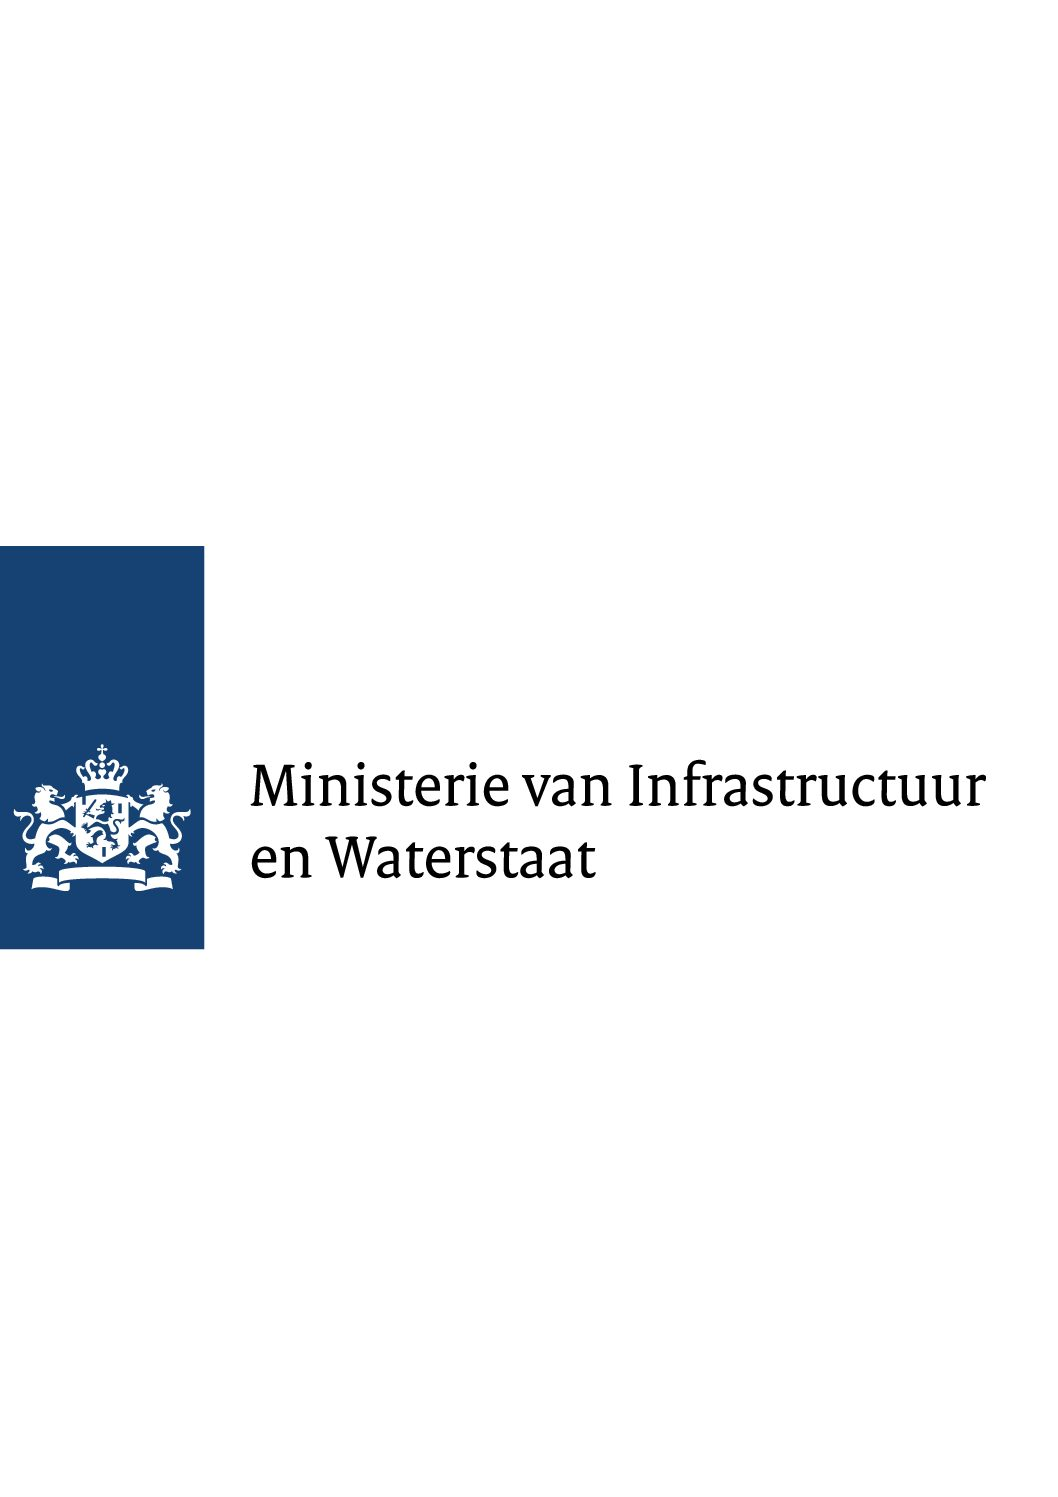 Dutch Ministry of Infrastructure and Environment